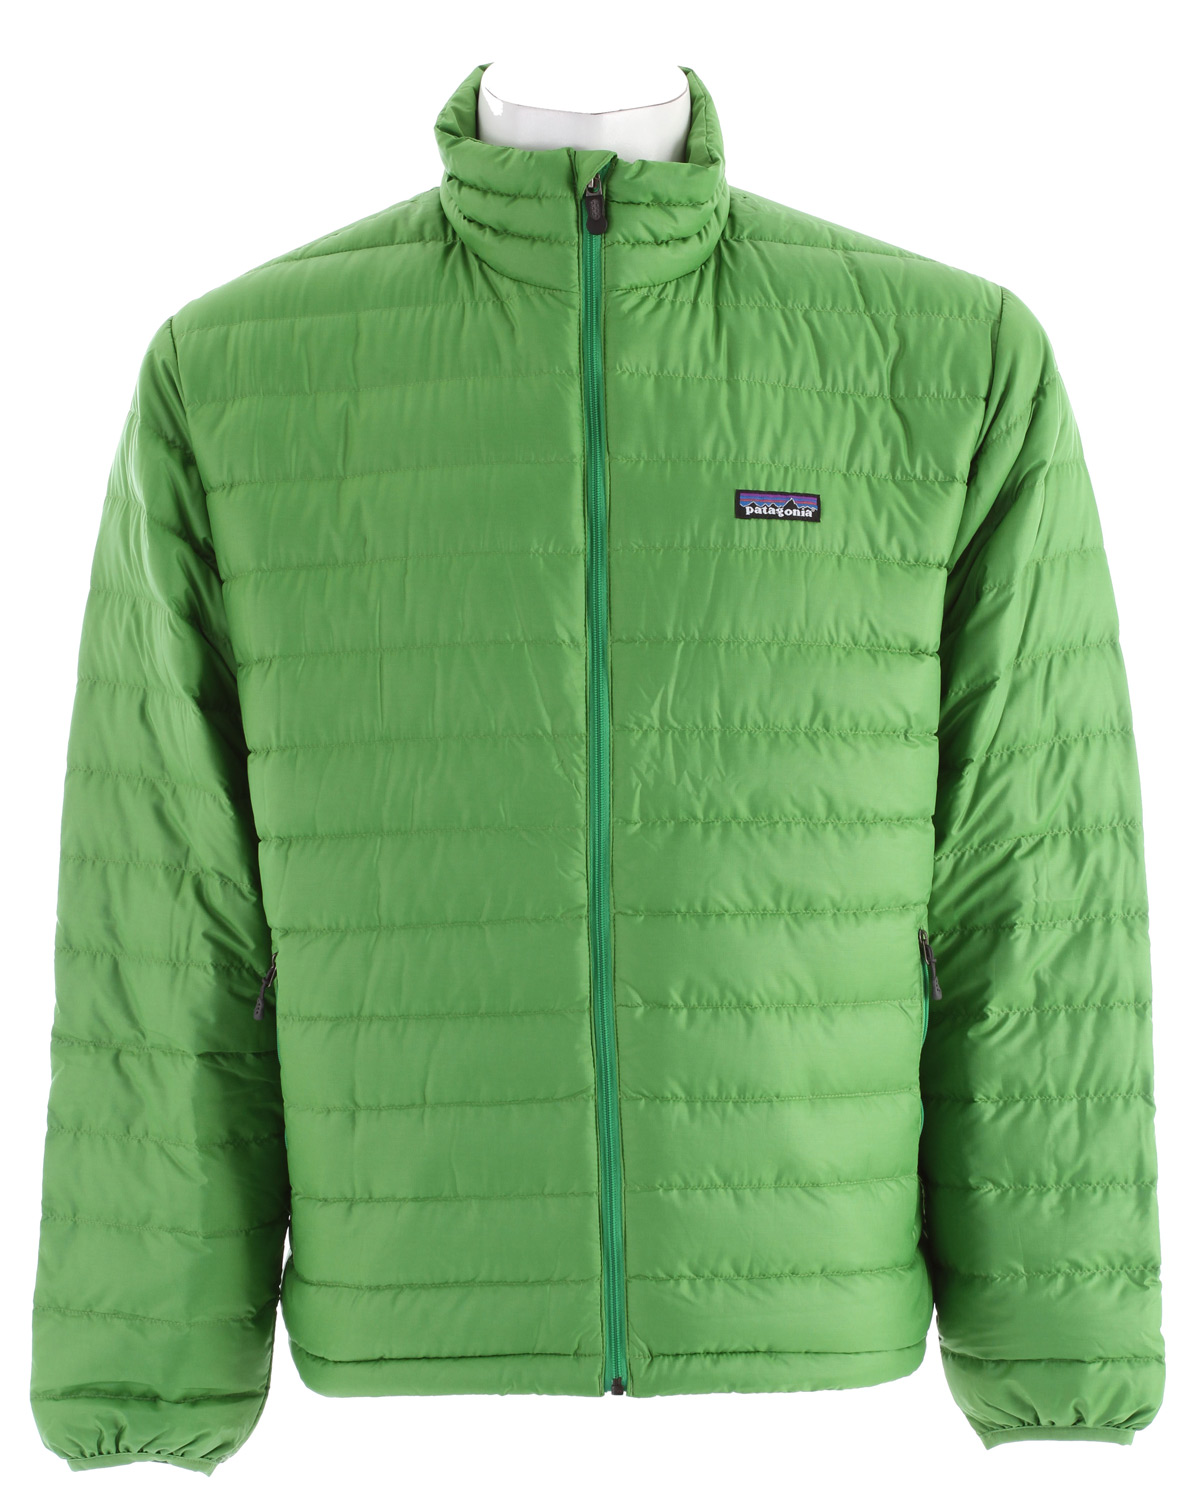 Lightweight and windproof, the Patagonia Down Sweater Jacket has a 100% recycled polyester shell and is insulated with warm, highly compressible 800-fill-power goose down. It can be worn as a midlayer or outerwear in cold climatesKey Features of the Patagonia Down Sweater Jacket: Lightweight, windproof and water-resistant shell with a high tear-strength and a Deluge DWR (durable water repellent) finish Quilted construction stabilizes premium European 800-fill-power goose down Nylon-bound elastic cuffs and drawcord hem seal in warmth Pockets: Two zippered handwarmers; one interior zippered stretch mesh, which doubles as a stuff sack and has a carabiner clip-in loop Regular fit (12.1 oz) 343 g Fabric: Shell and lining: 1.4-oz 22-denier polyester ripstop with a Deluge DWR finish. Insulation: 800-fill-power premium European goose down - $139.95